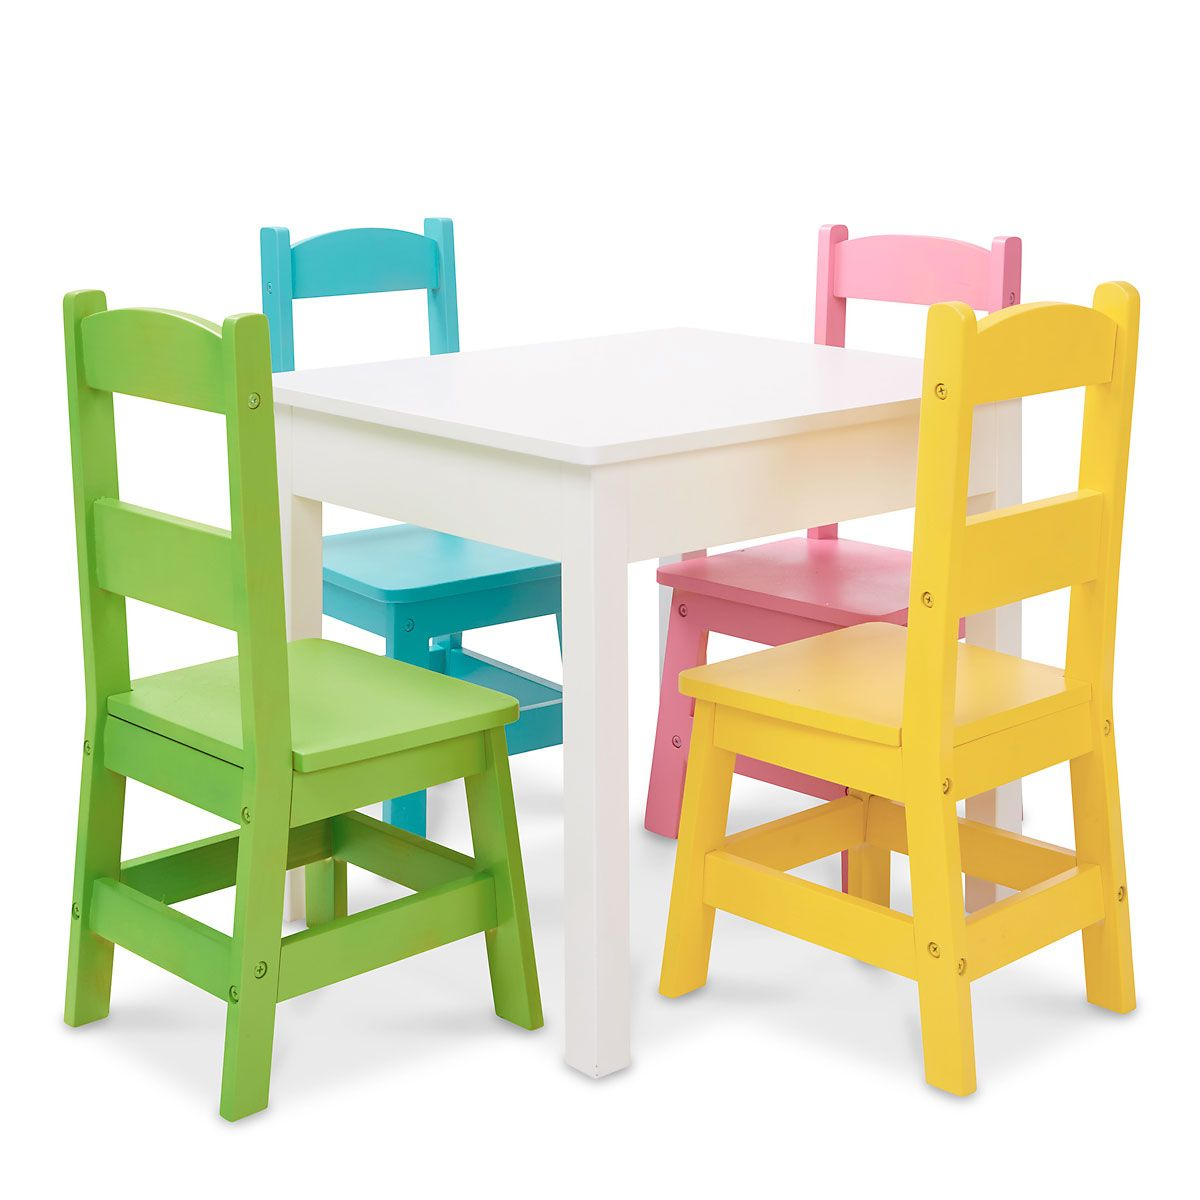 Personalized Chairs and Natural-Finish Table by Melissa & Doug®